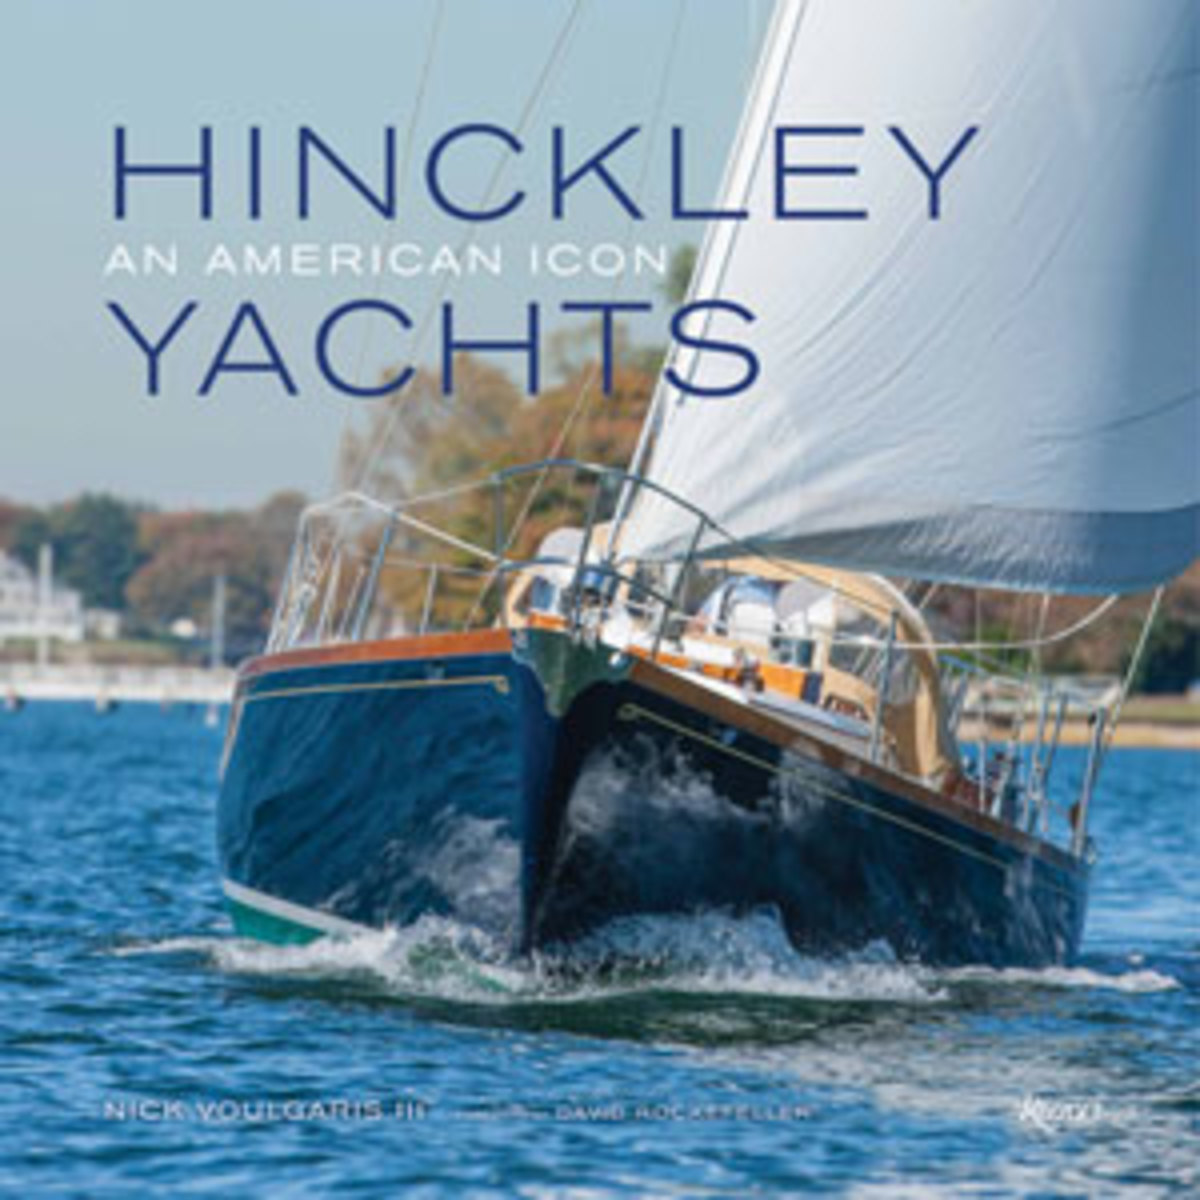 Hinckley Yachts book cover